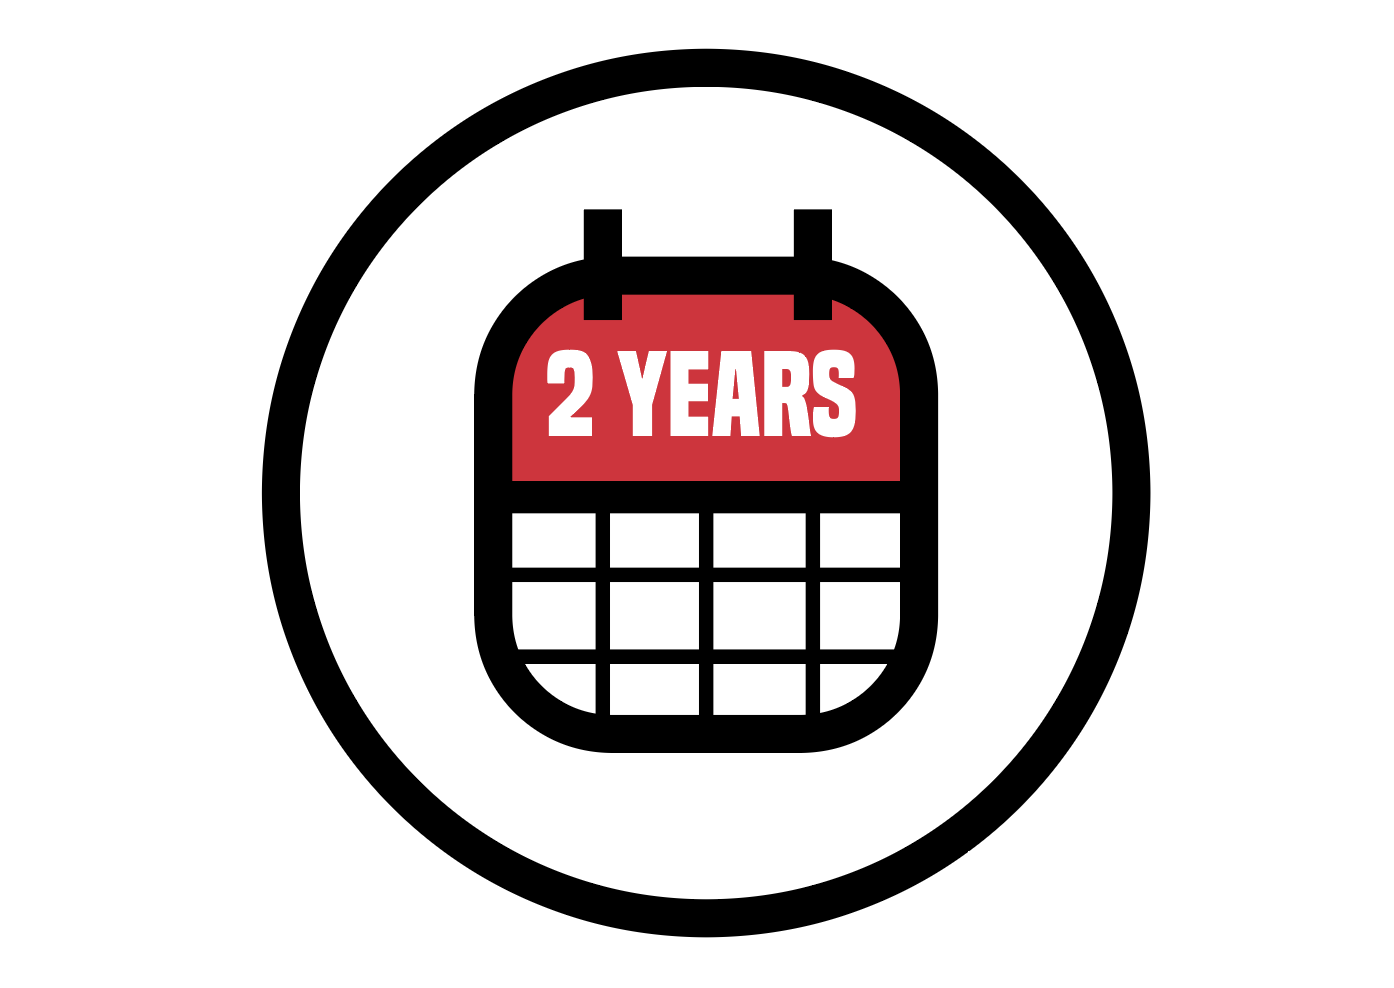 Long Service Interval - The 2-year service interval reduces your down-time and maintenance costs.